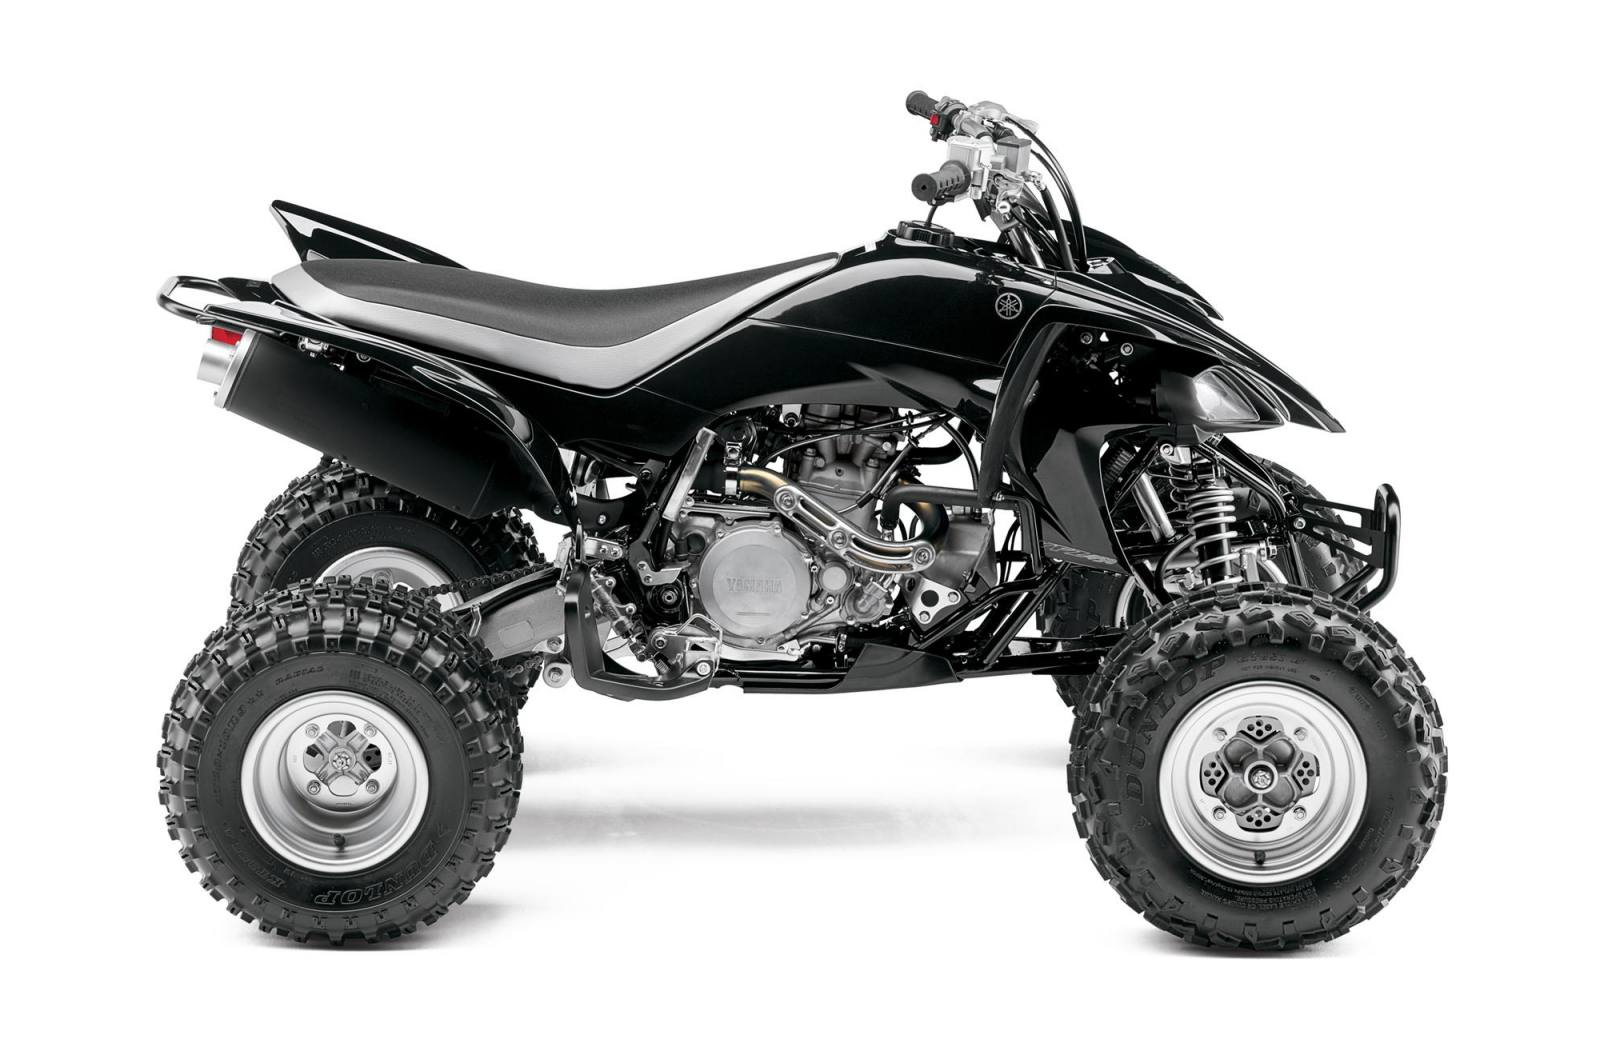 2013 yamaha yfz450 for sale in fairbanks ak northern power sports